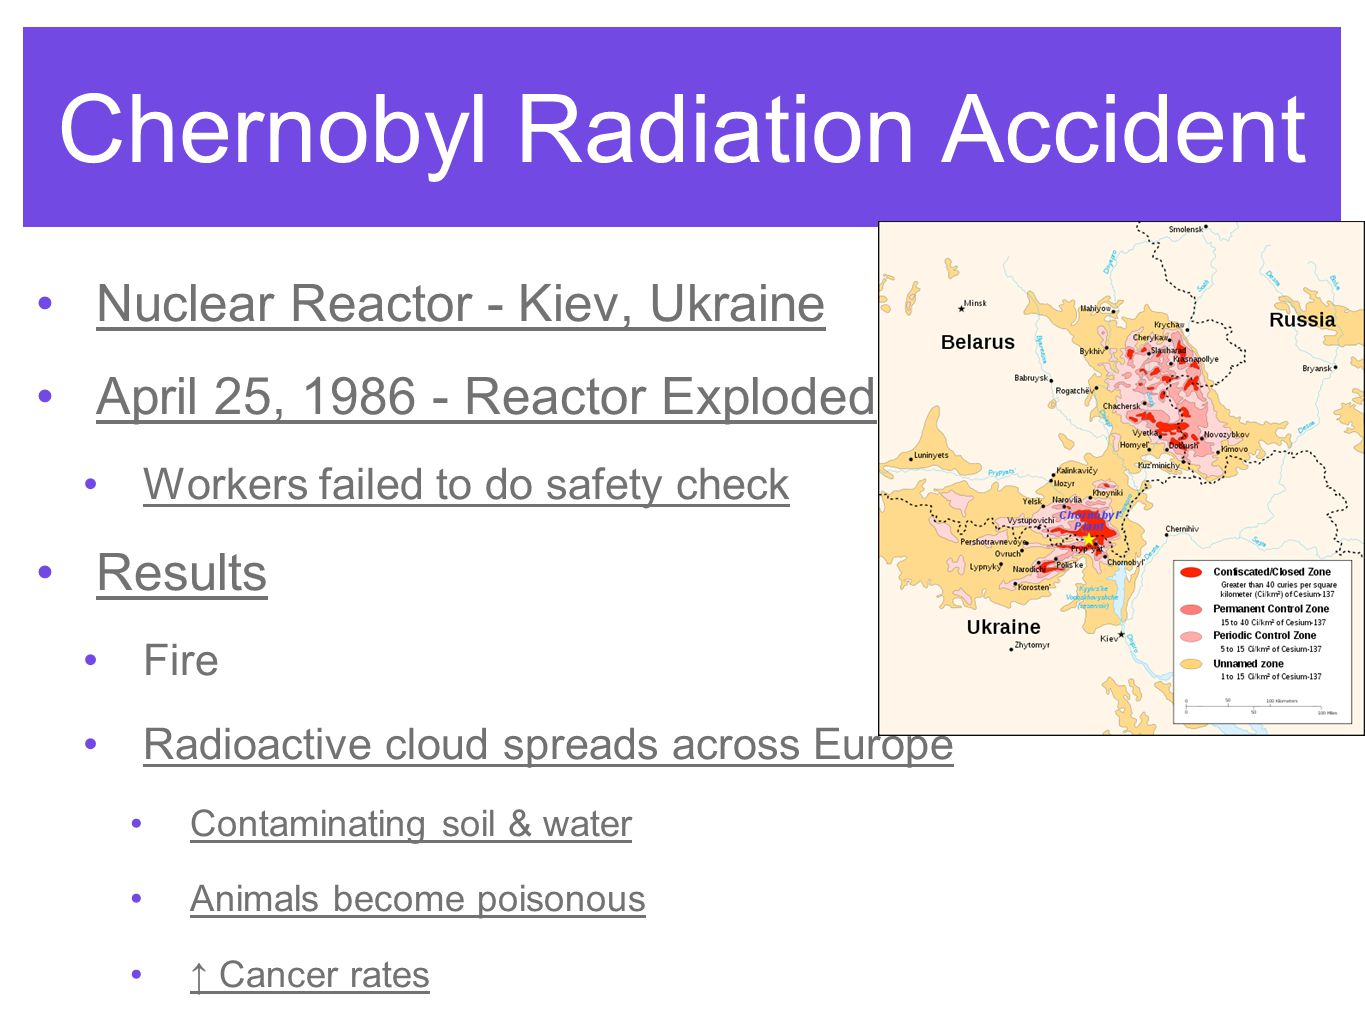 Chernobyl Radiation Accident Nuclear Reactor - Kiev, Ukraine April 25, 1986 - Reactor Exploded Workers failed to do safety check Results Fire Radioactive cloud spreads across Europe Contaminating soil & water Animals become poisonous ↑ Cancer rates